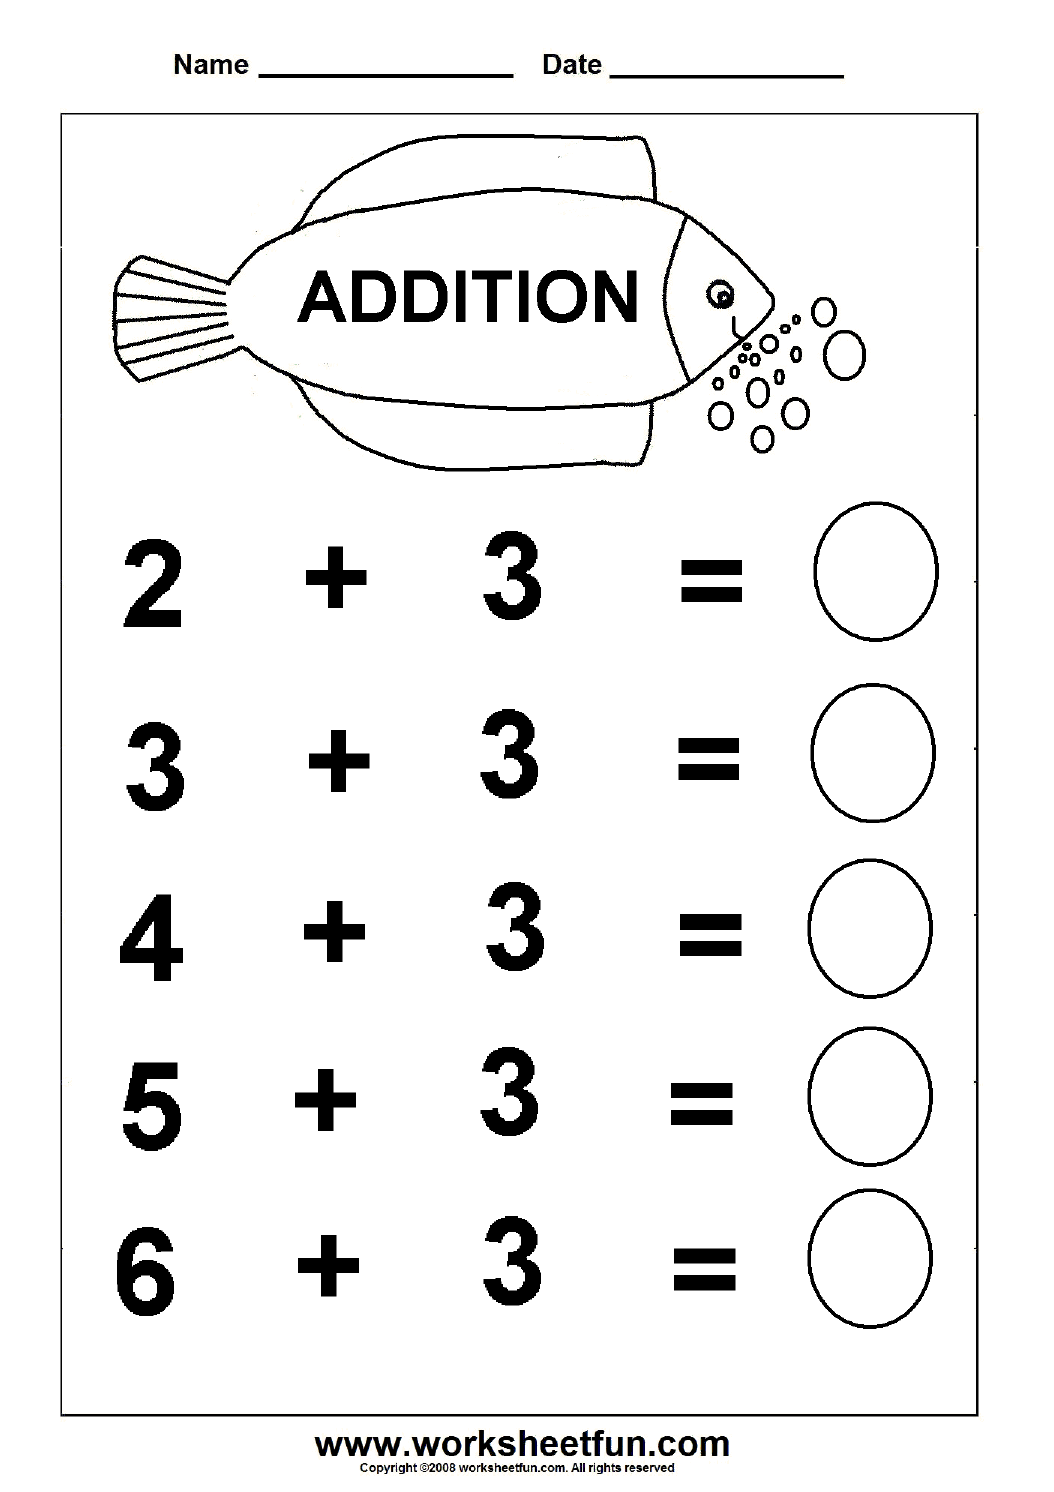 Printables Beginner Math Worksheets beginner math worksheets hypeelite kindergarten addition free syndeomedia